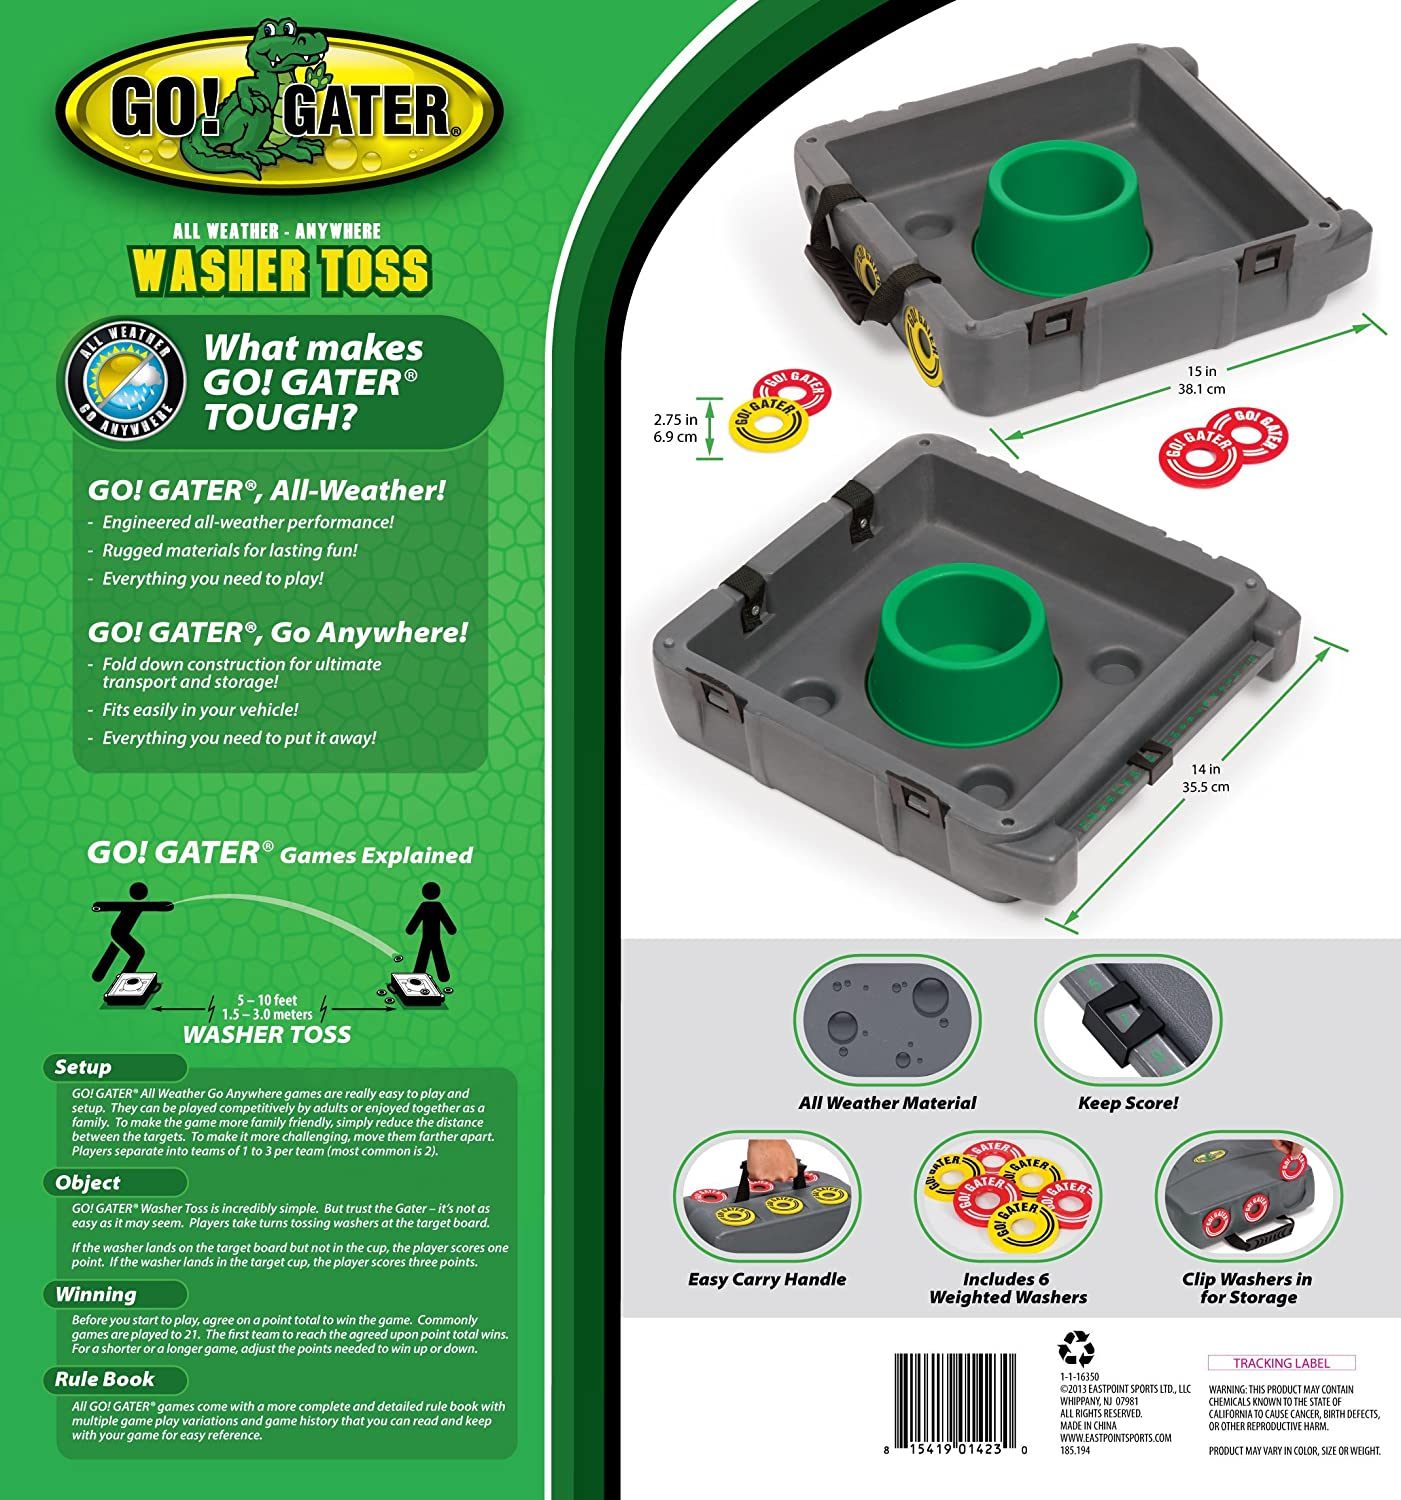 Go! Gater Washer Toss Set with Molded Case East Point 1-1-16350-DS